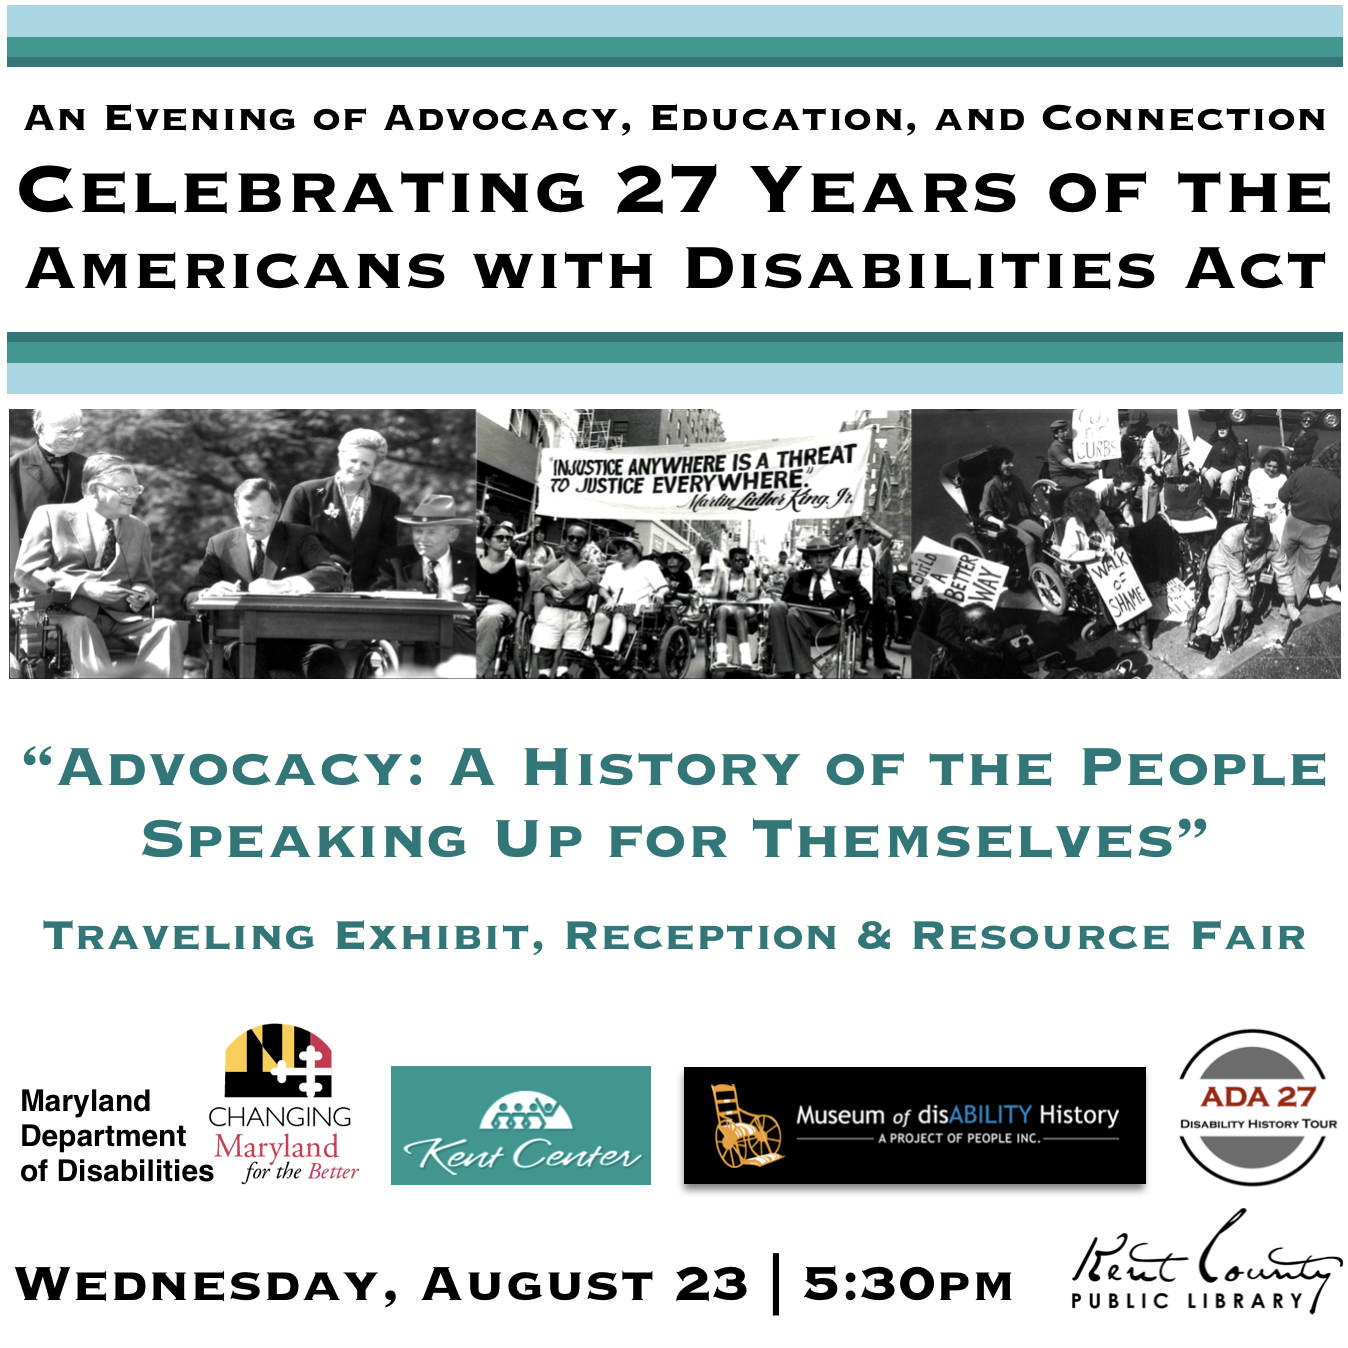 Reception: Celebrating 27 Years of the Americans with Disabilities Act